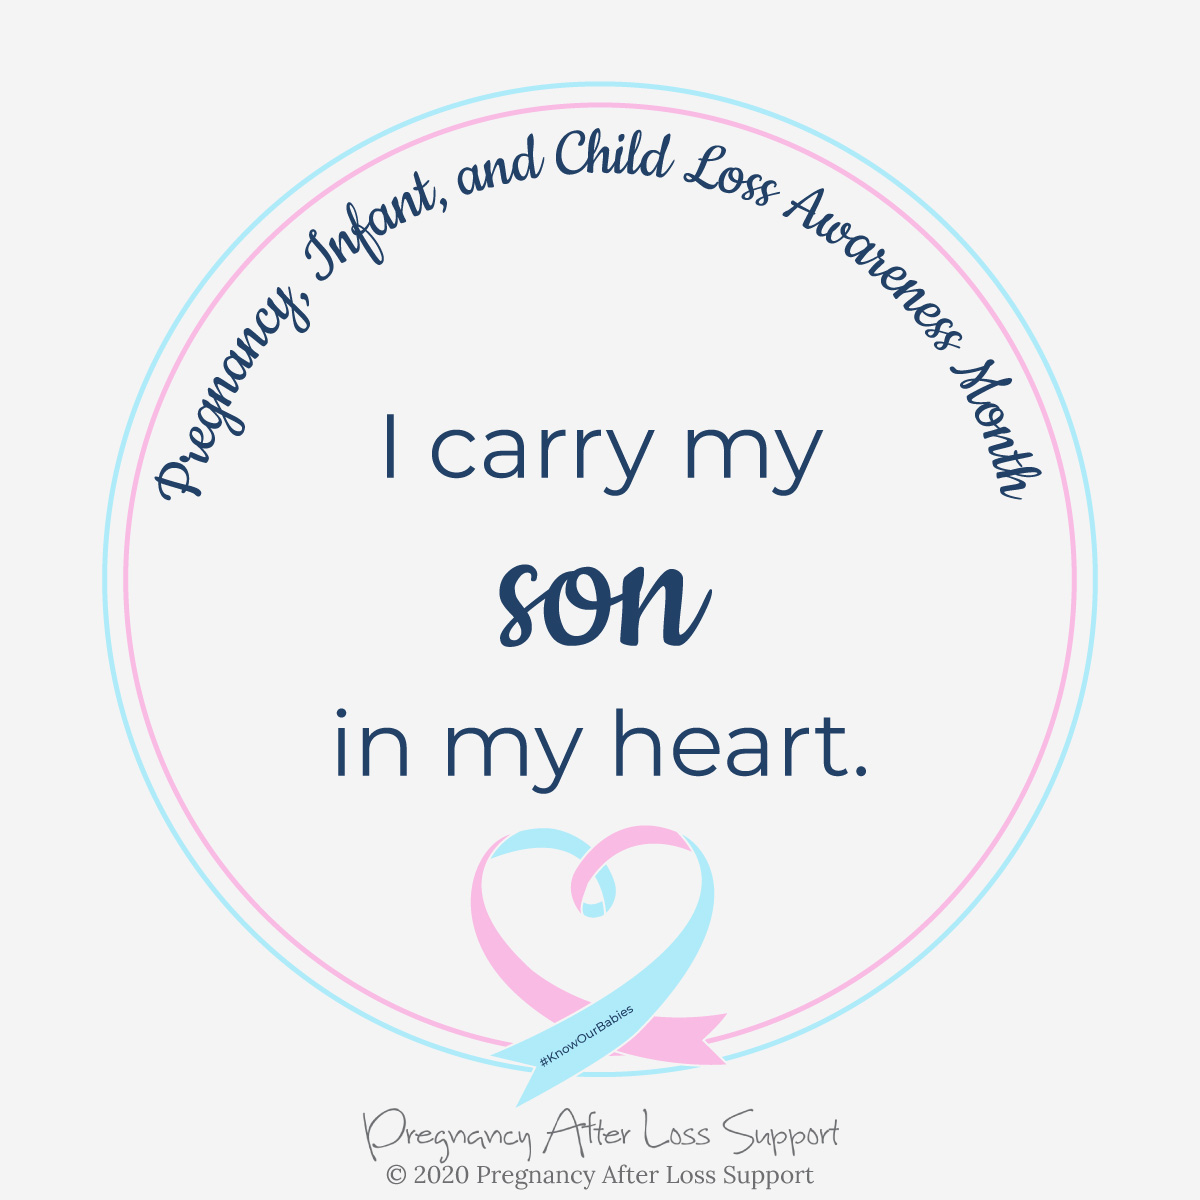 I carry my son in my heart - Pregnancy, Infant, and Child Loss Awareness Month